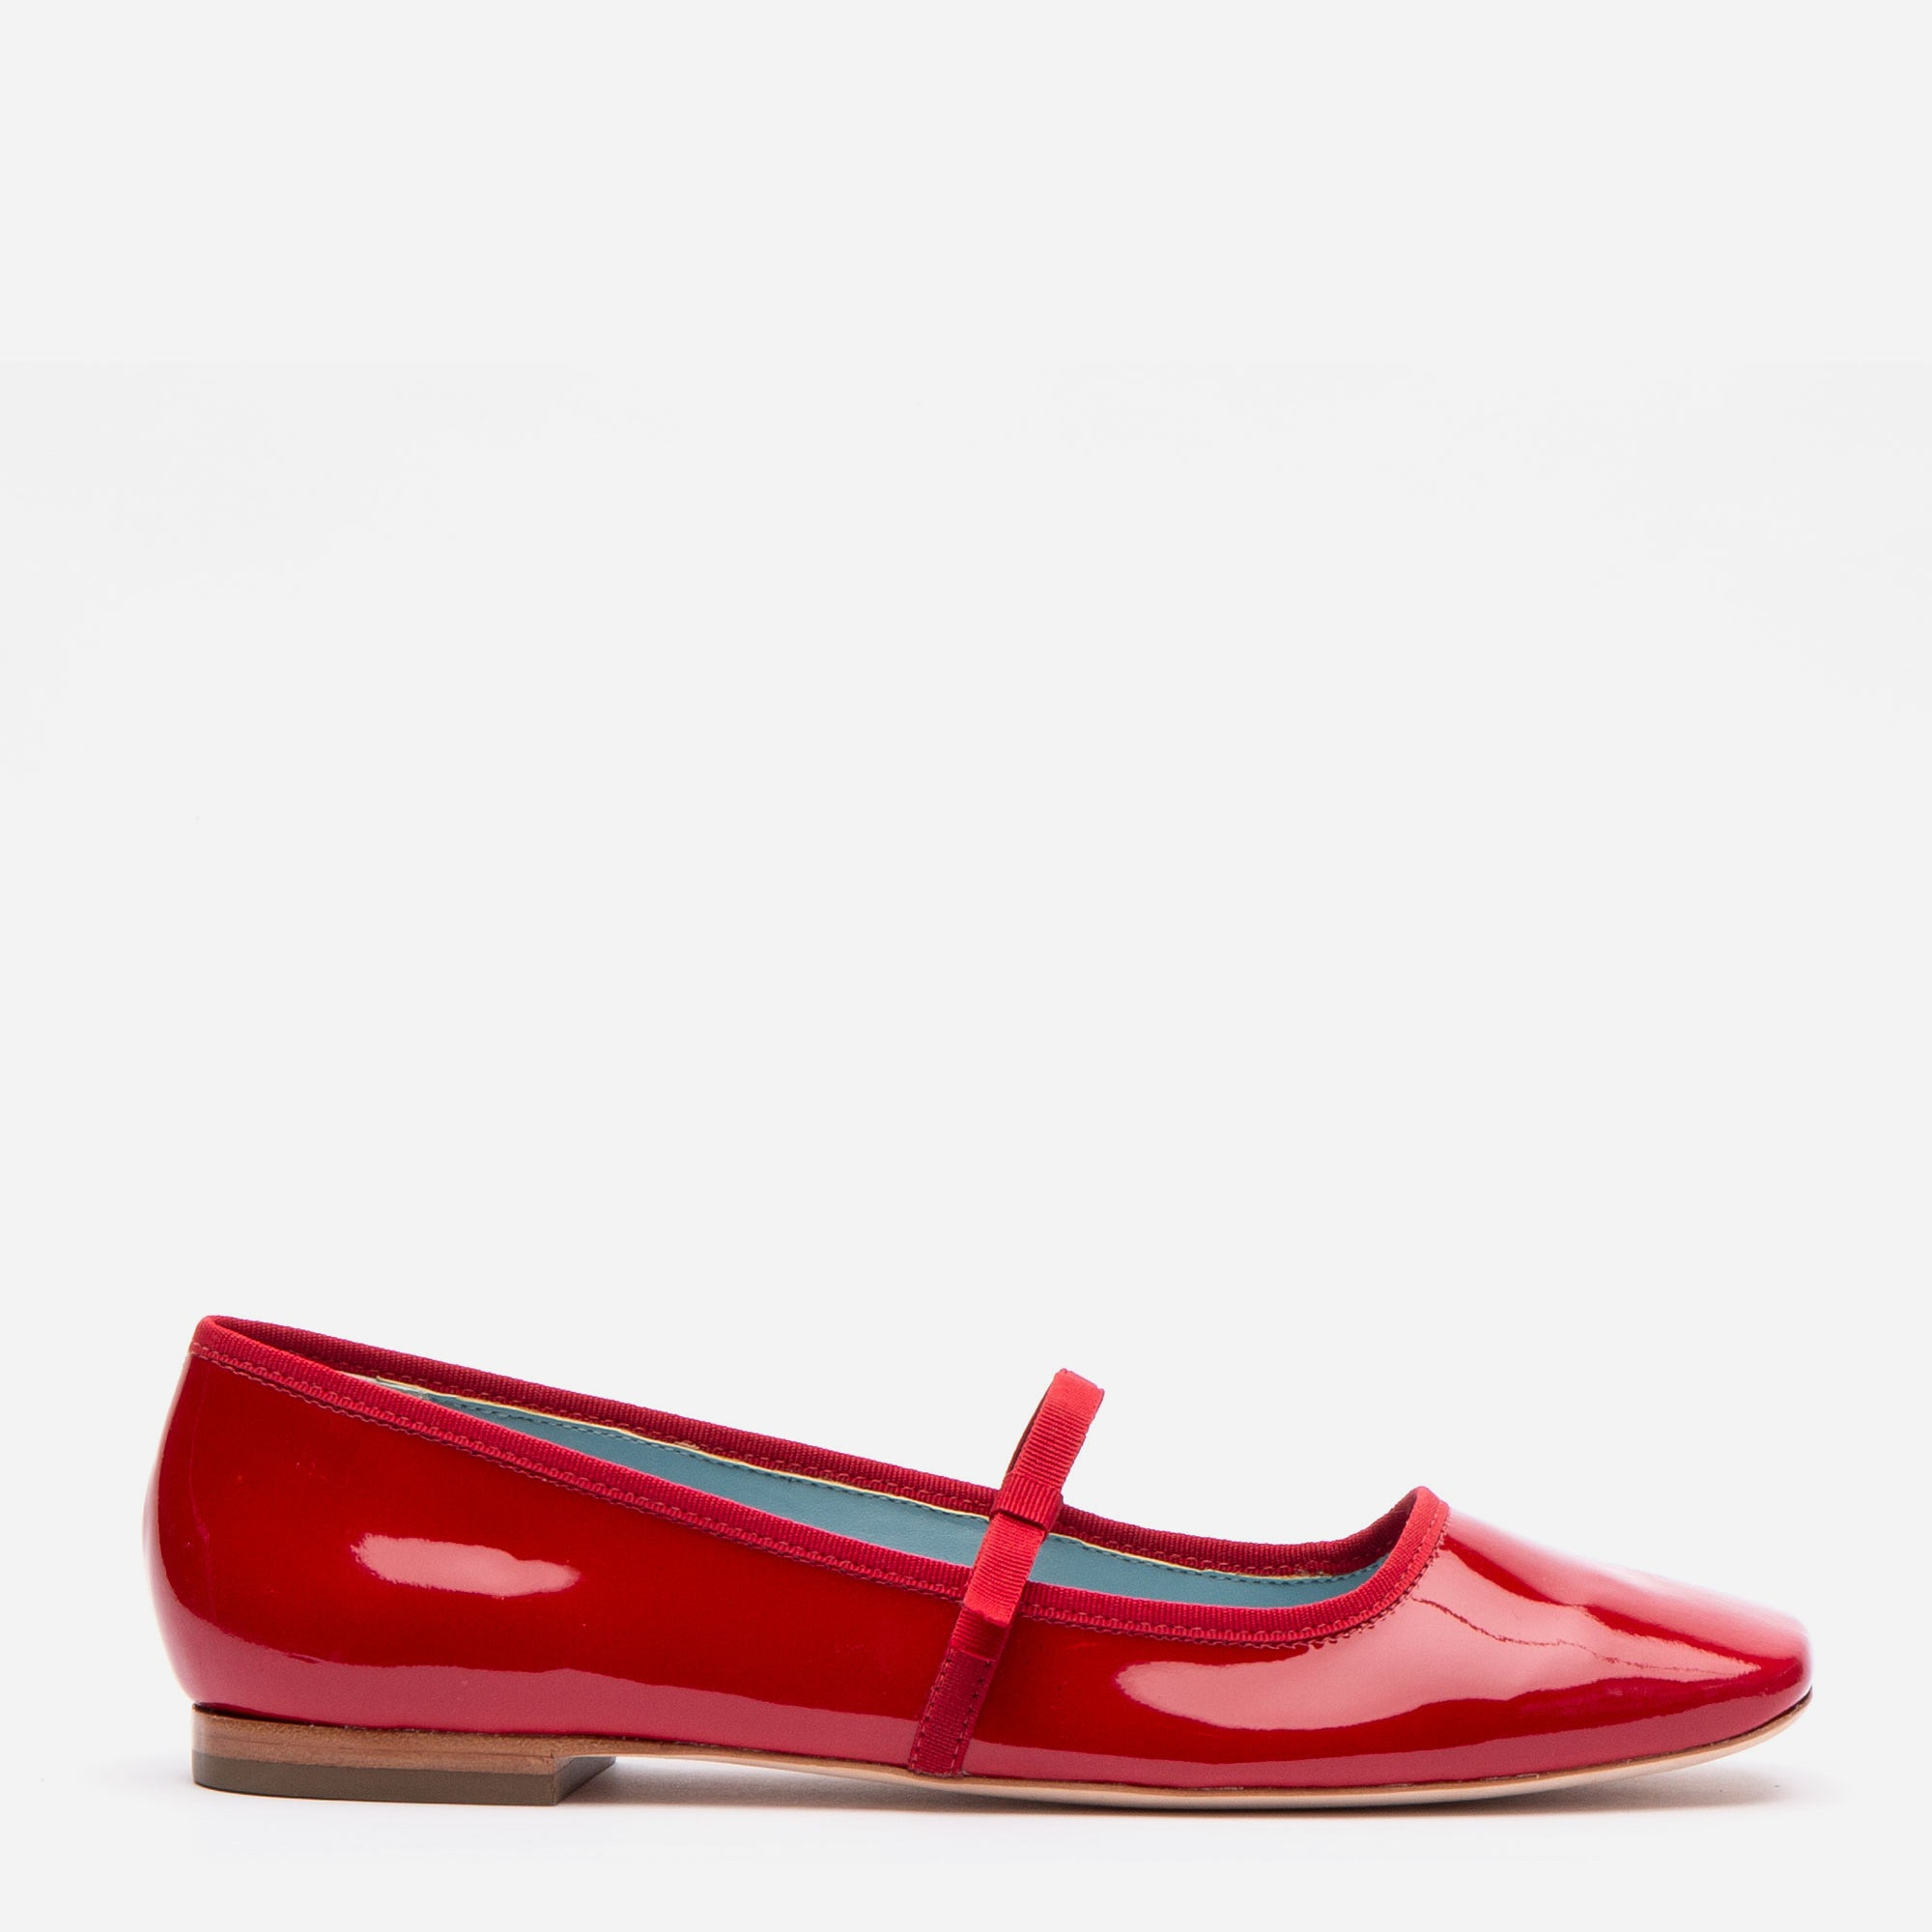 Jude Mary Jane Flats Red Patent